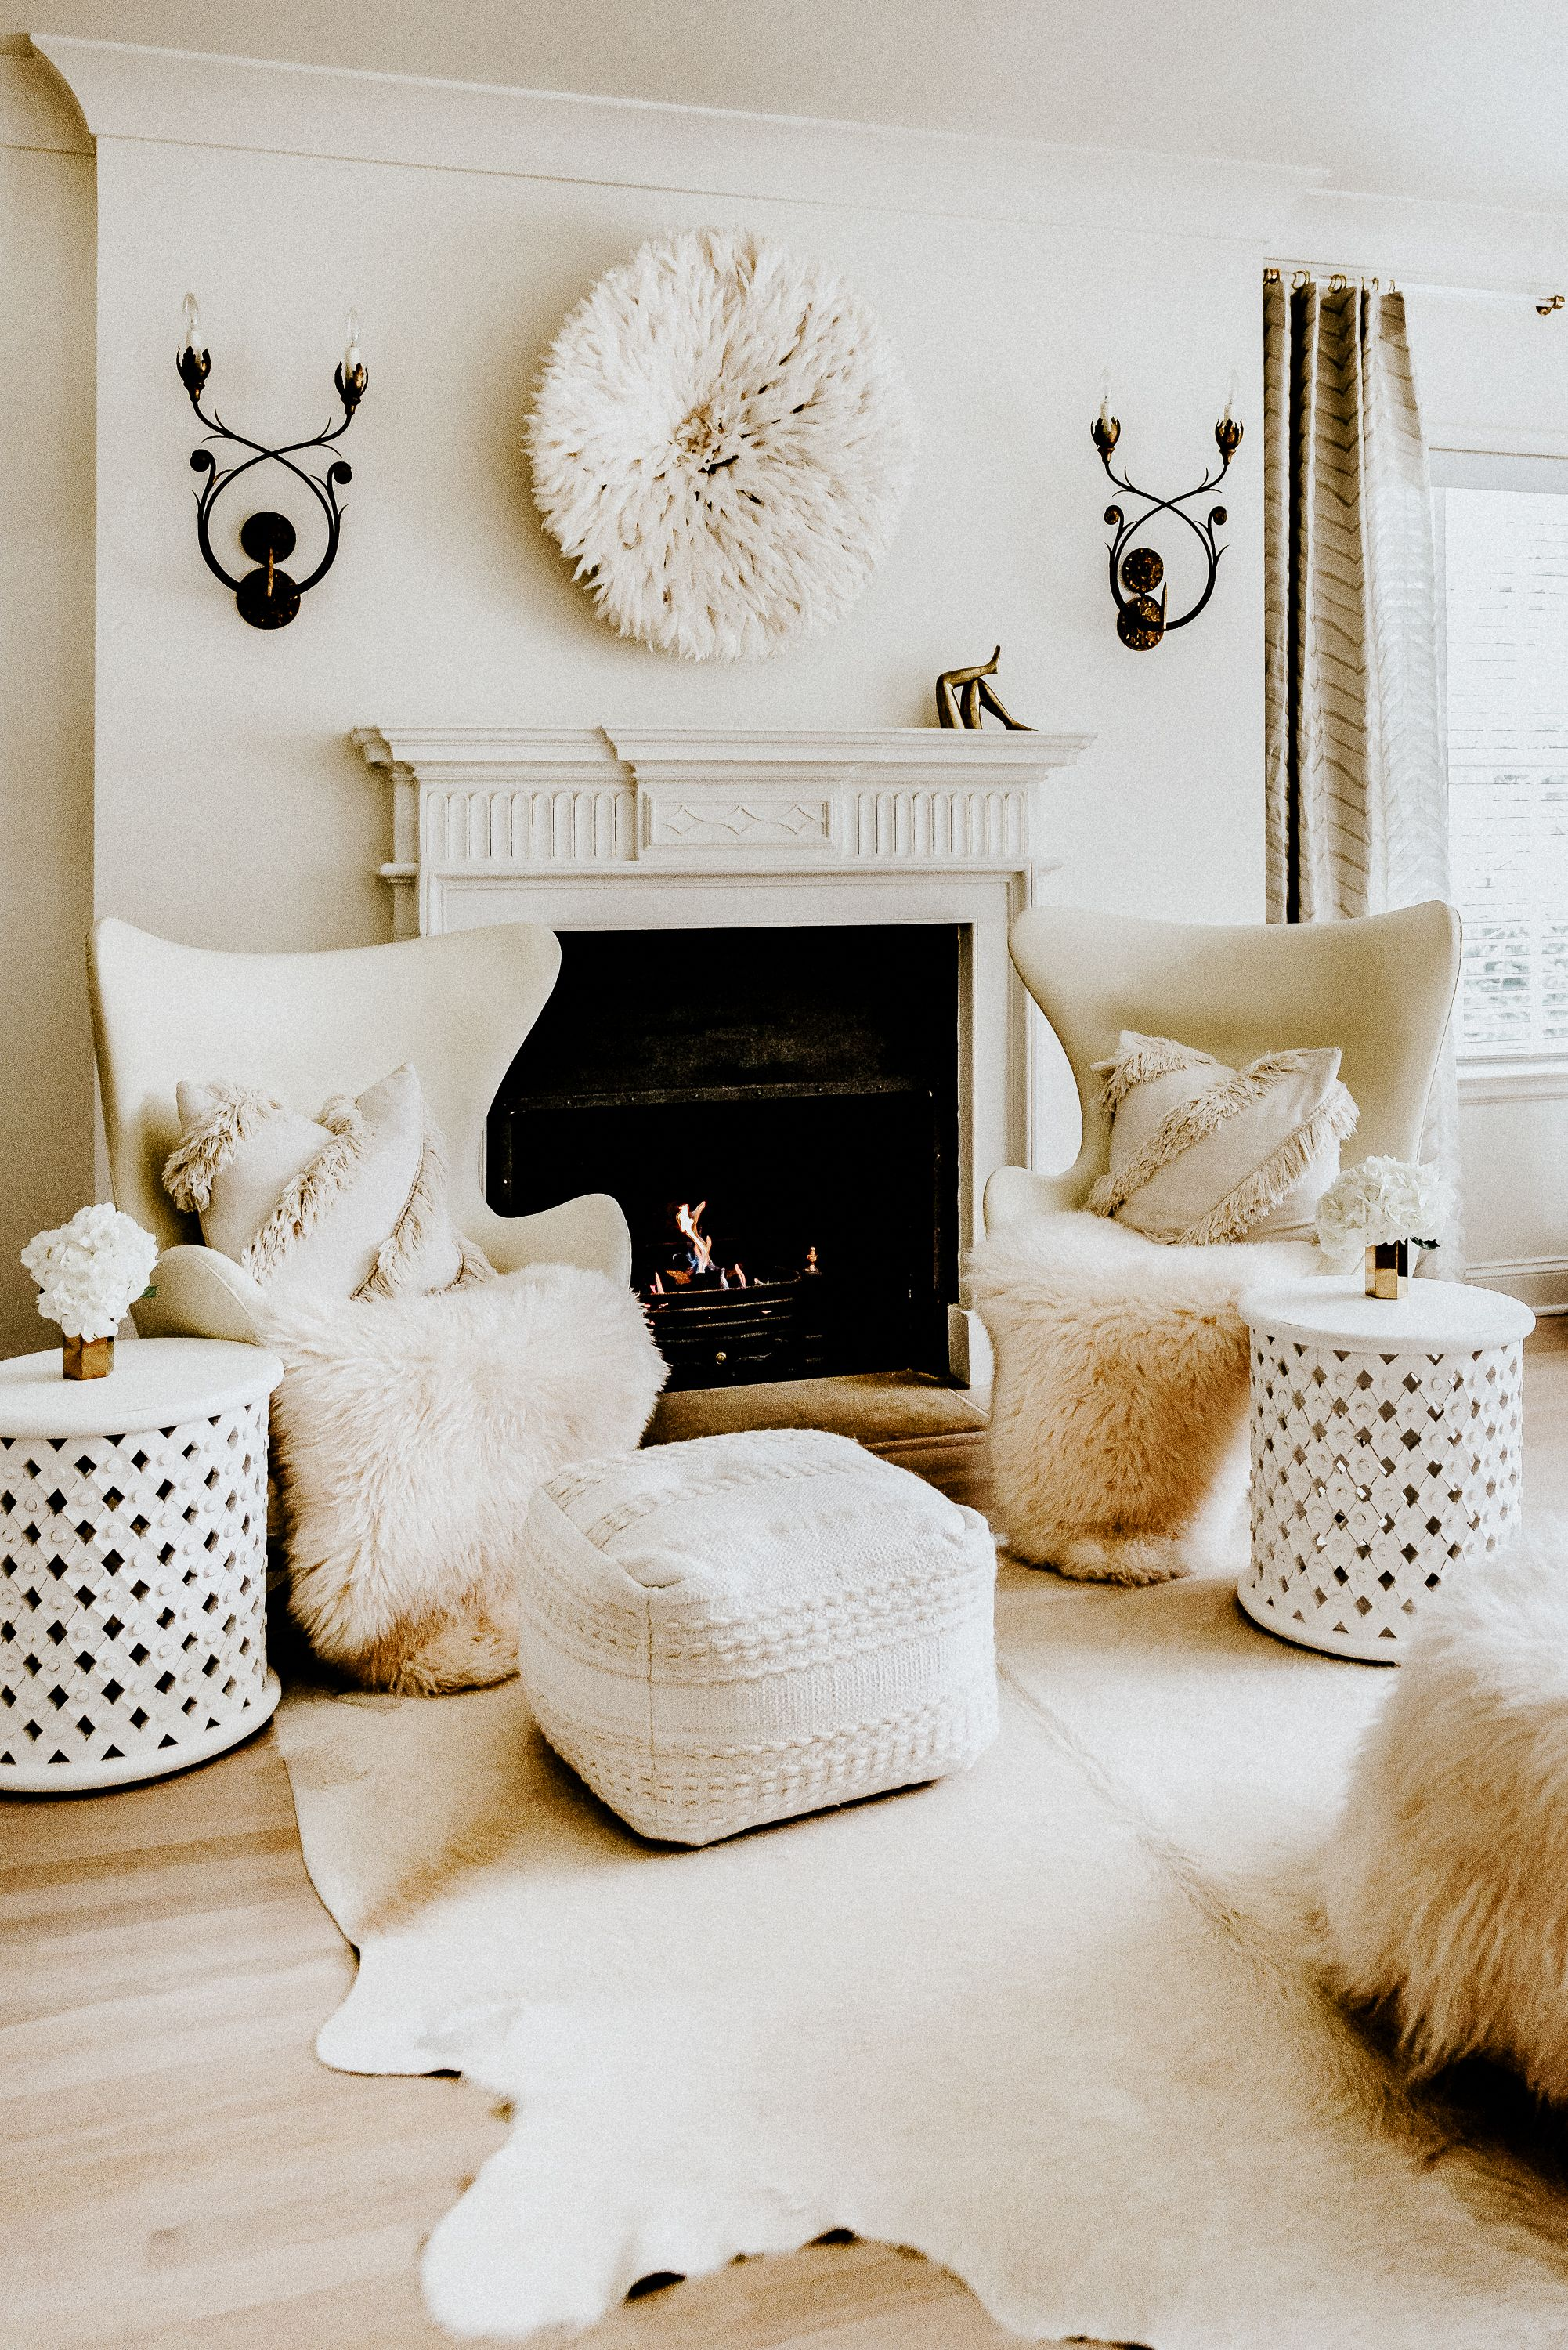 2019 Decor Trends Add Tribal Touches Blog Decor